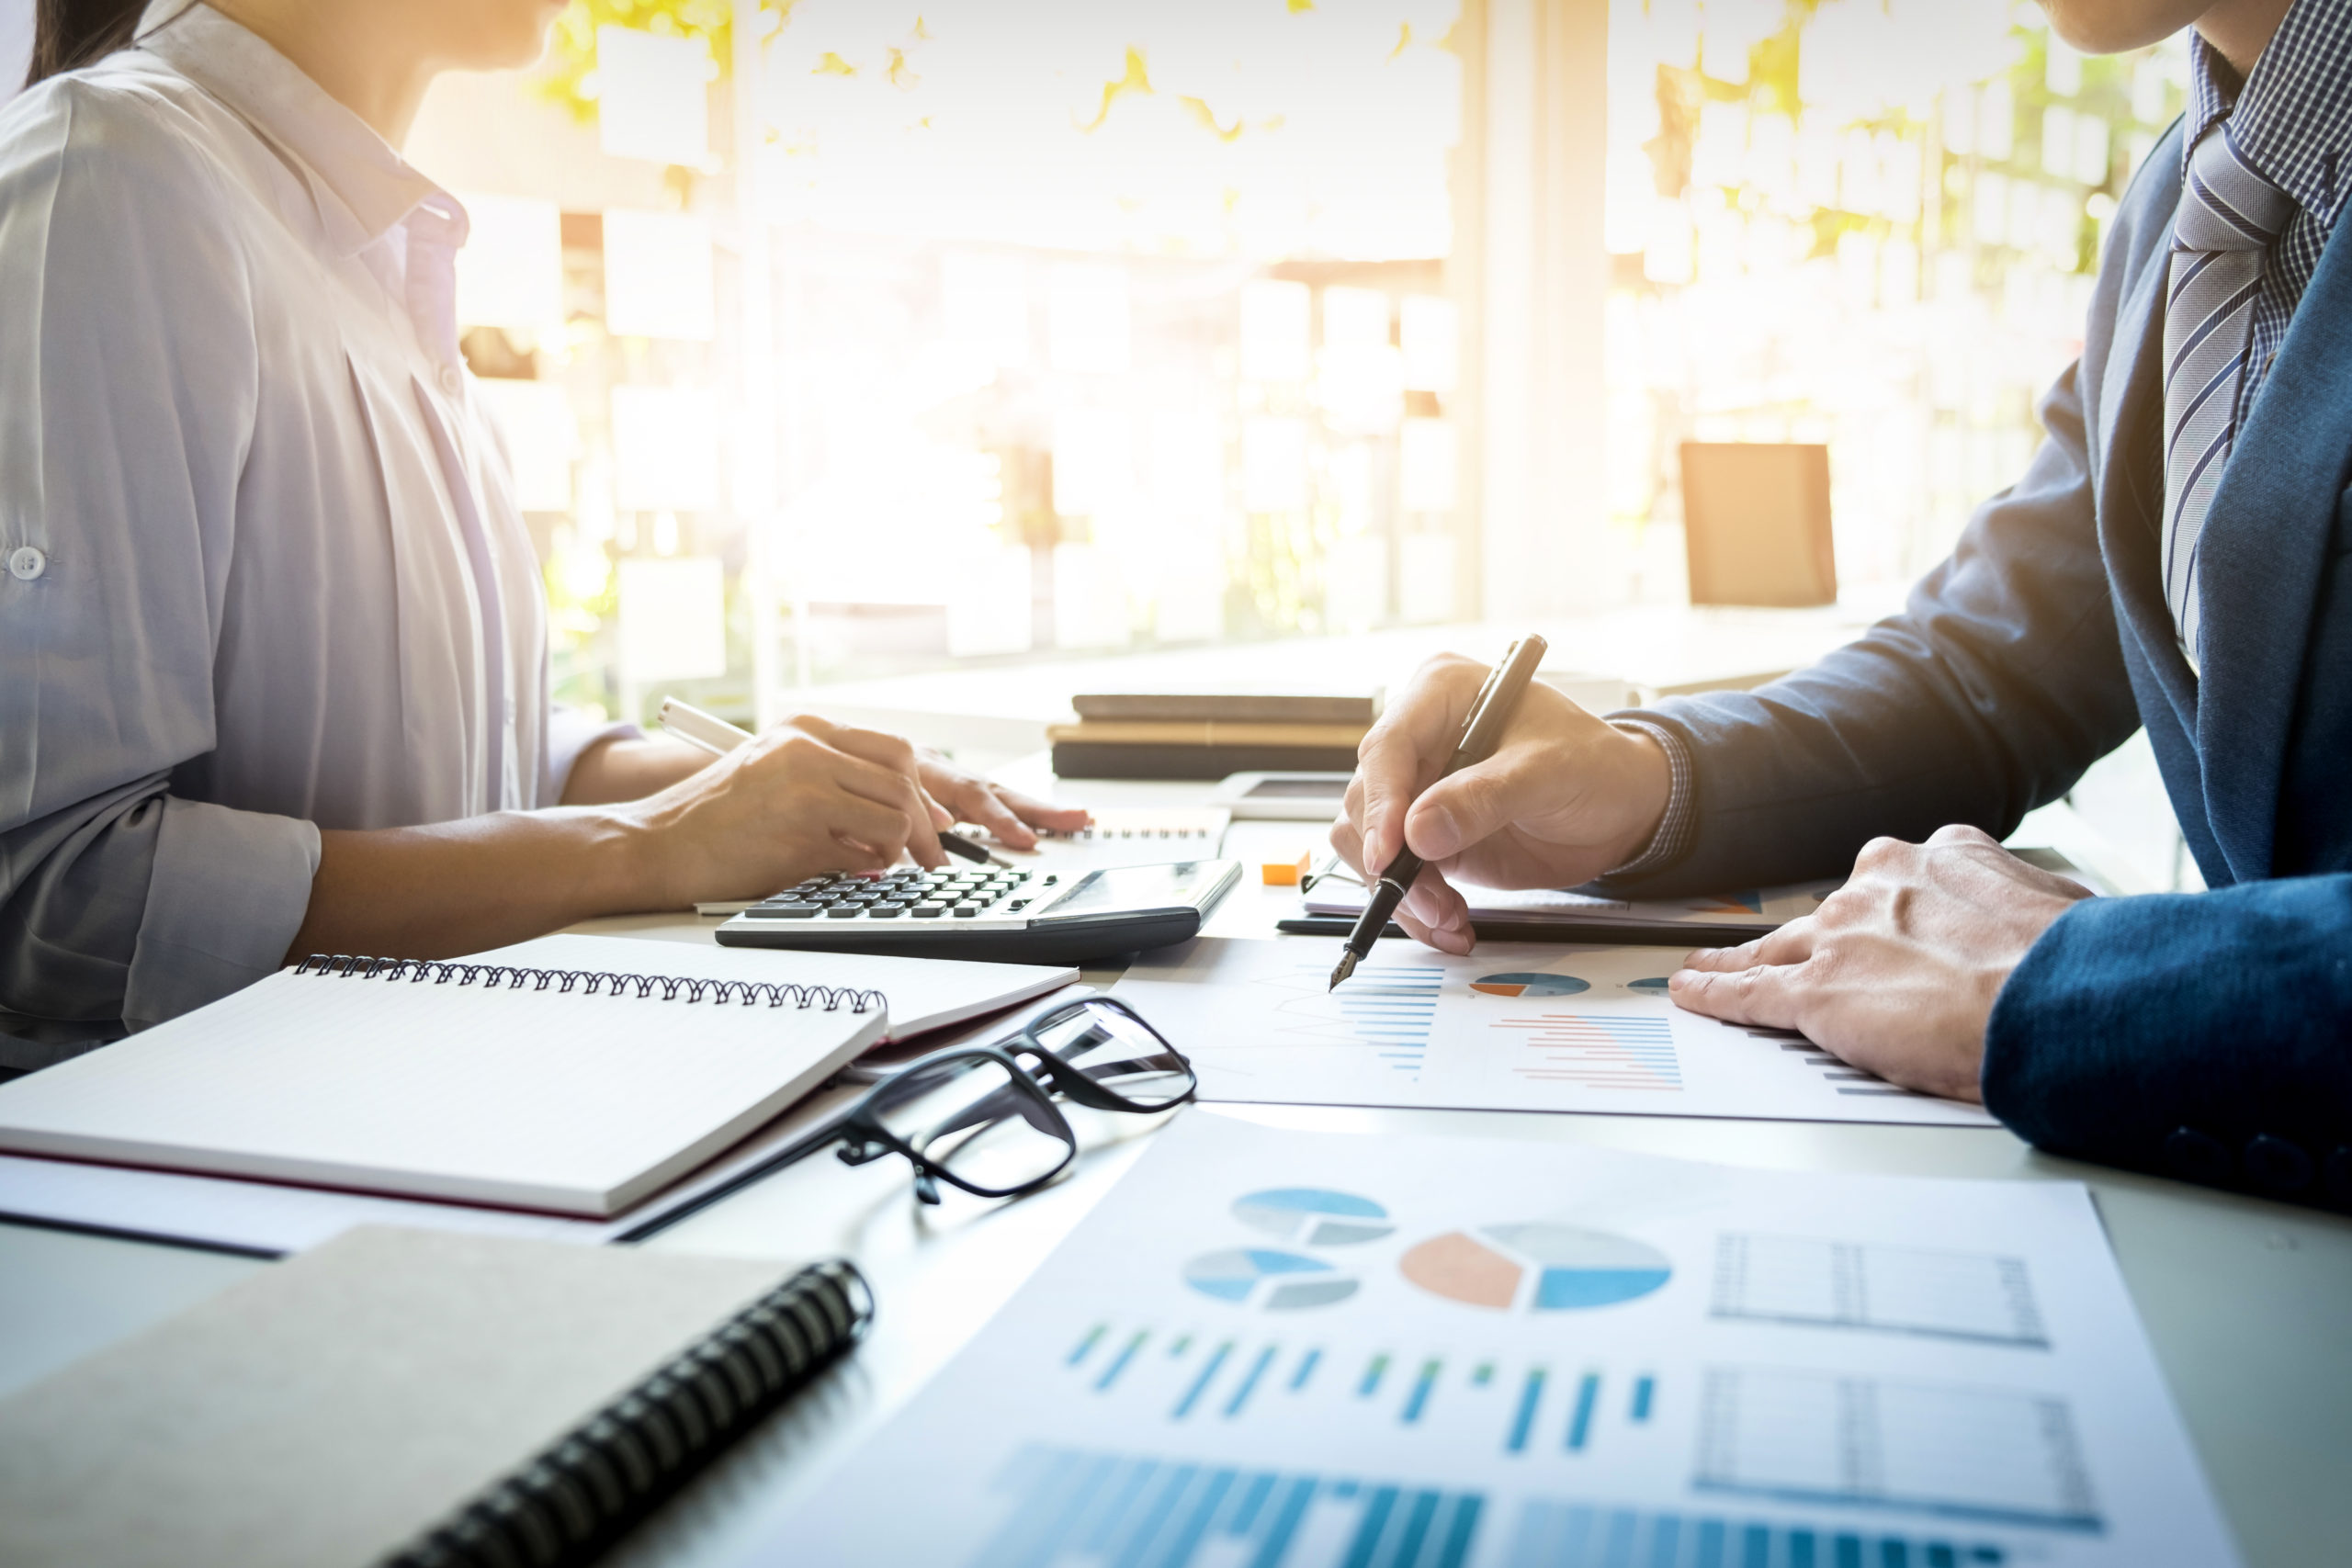 business man financial inspector and secretary making report calculating or checking balance internal revenue service inspector checking document audit concept scaled